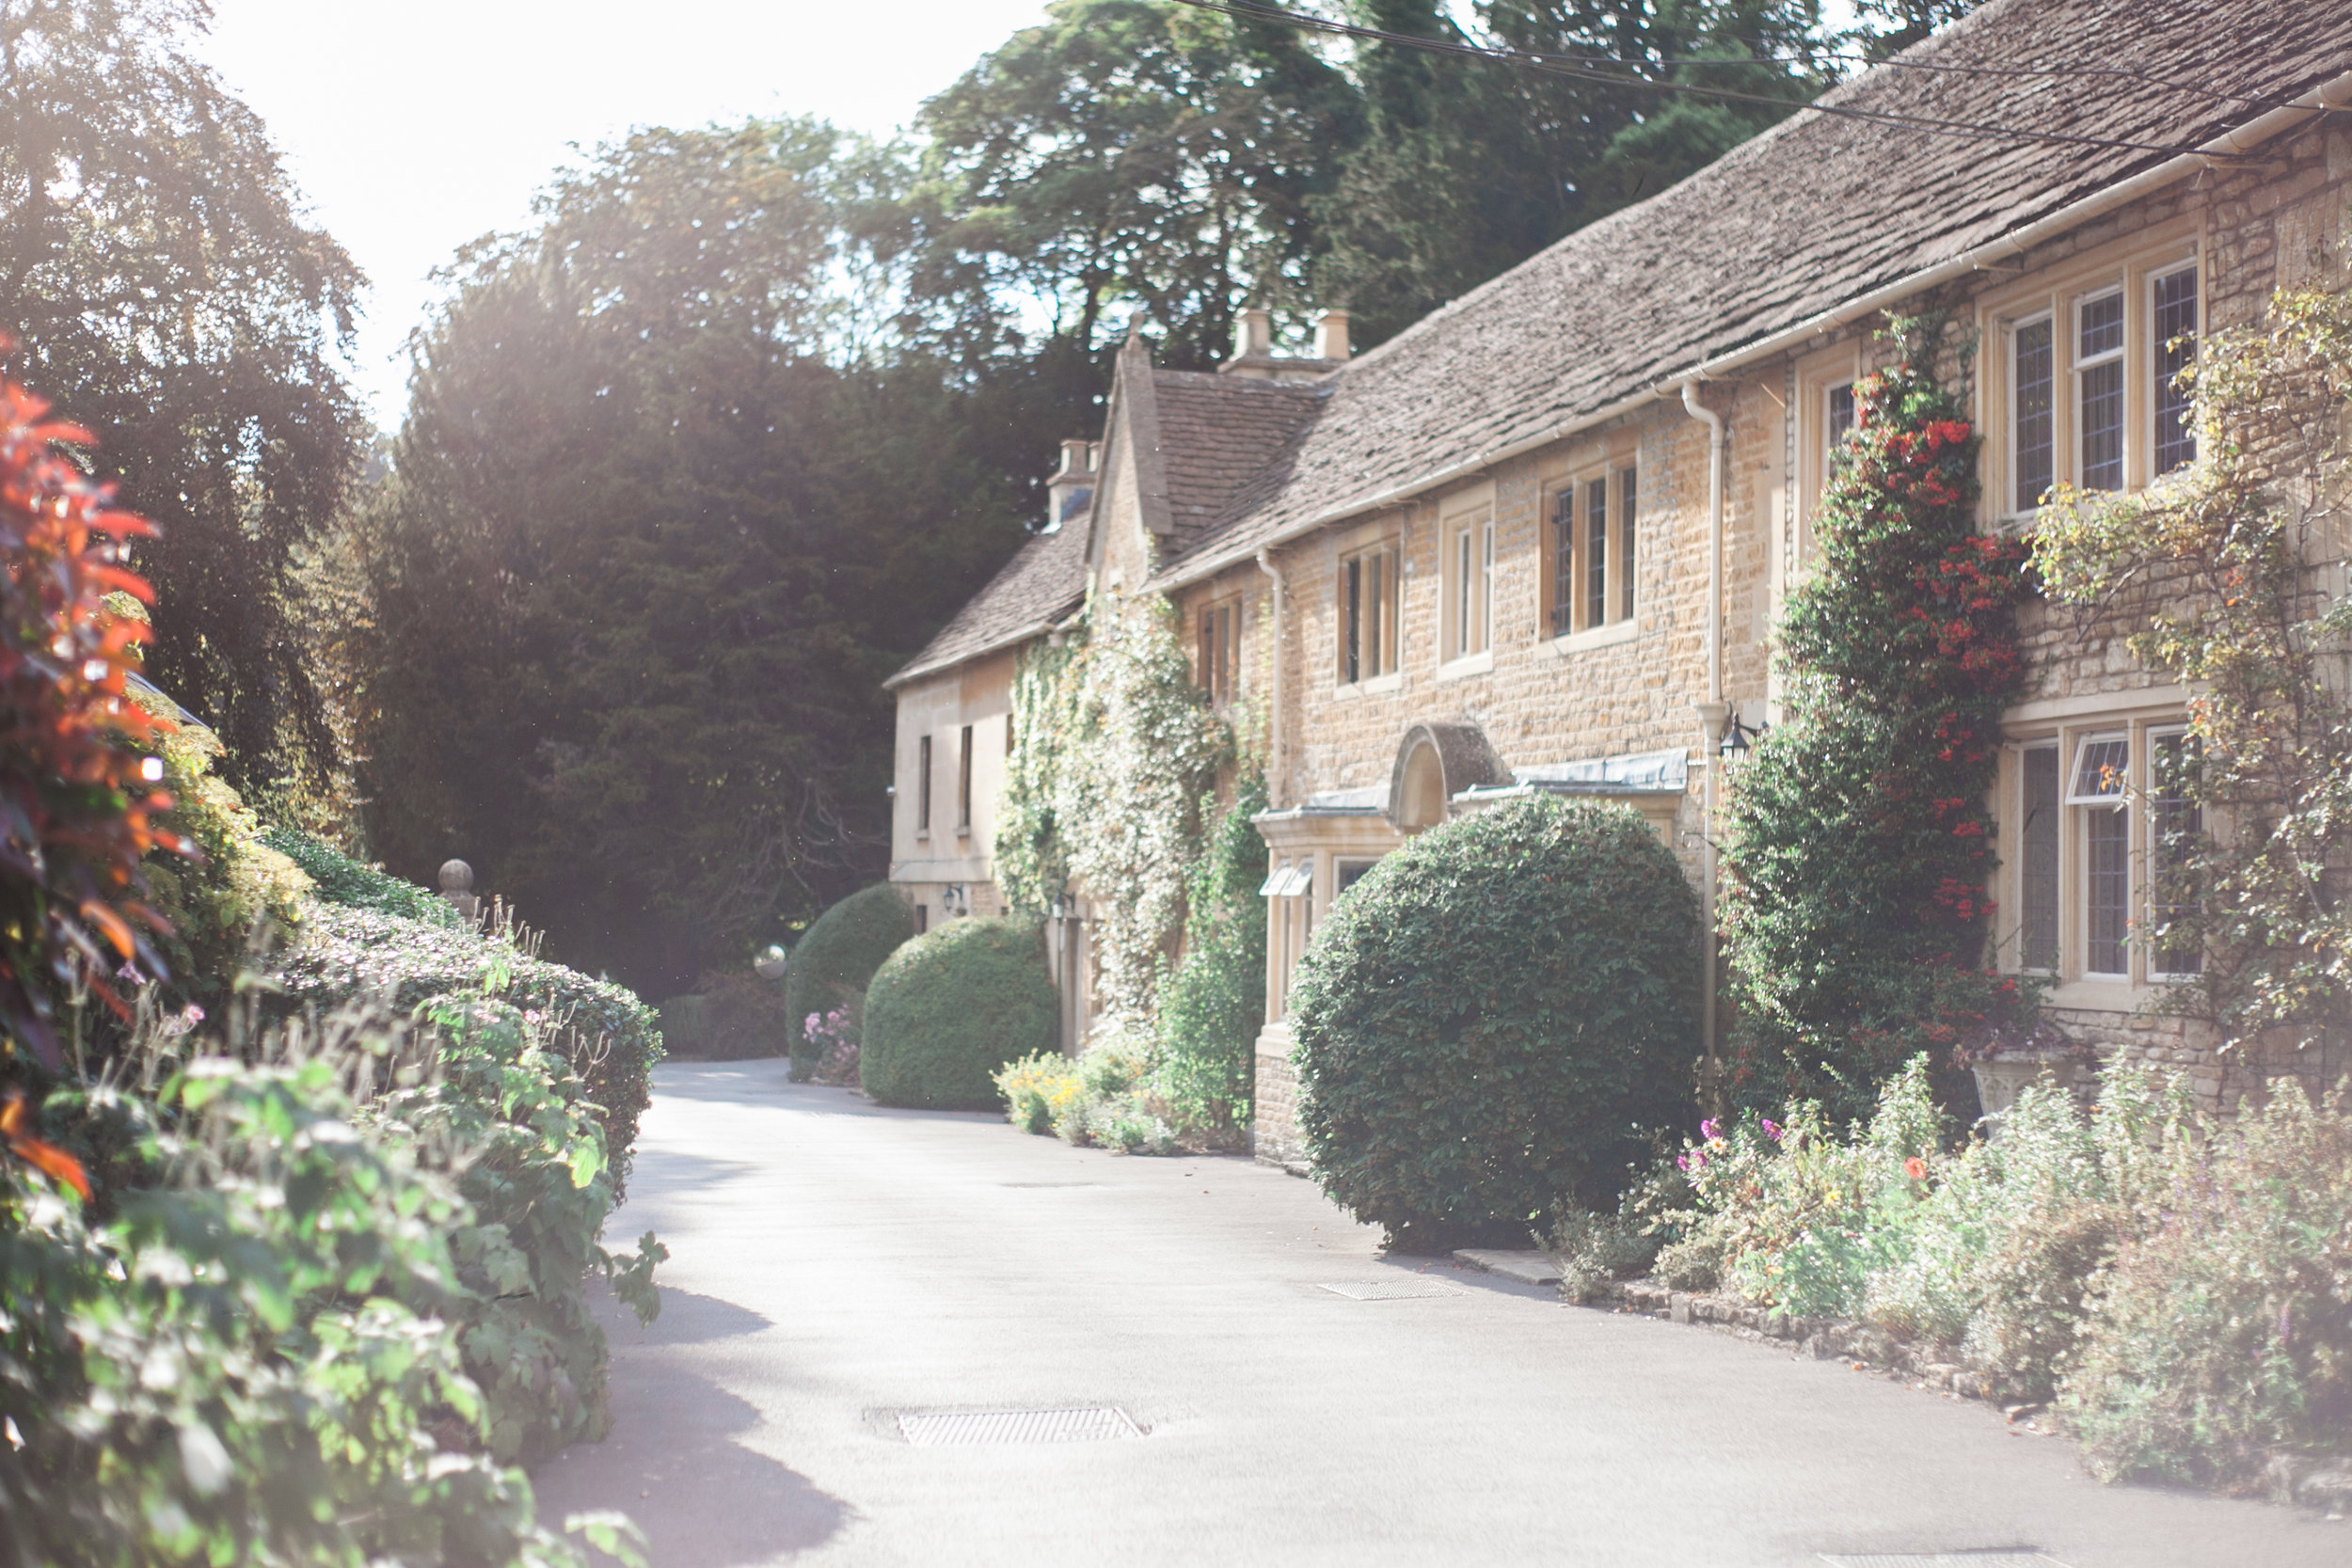 day_three_cotswolds (61 of 133).jpg